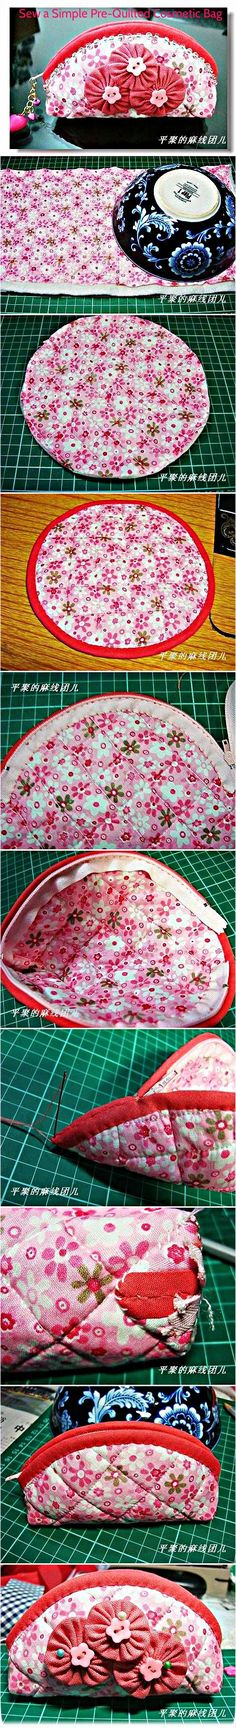 Sew a Girly Pre-Quilted Cosmetic Bag Free Sewing Tutorial from Useful DIY The post Sew a Girly Pre-Quilted Cosmetic Bag appeared first on Makeup Trends On World. Sewing Hacks, Sewing Tutorials, Sewing Patterns, Tutorial Sewing, Free Tutorials, Purse Patterns, Quilting Tutorials, Craft Tutorials, Fabric Crafts